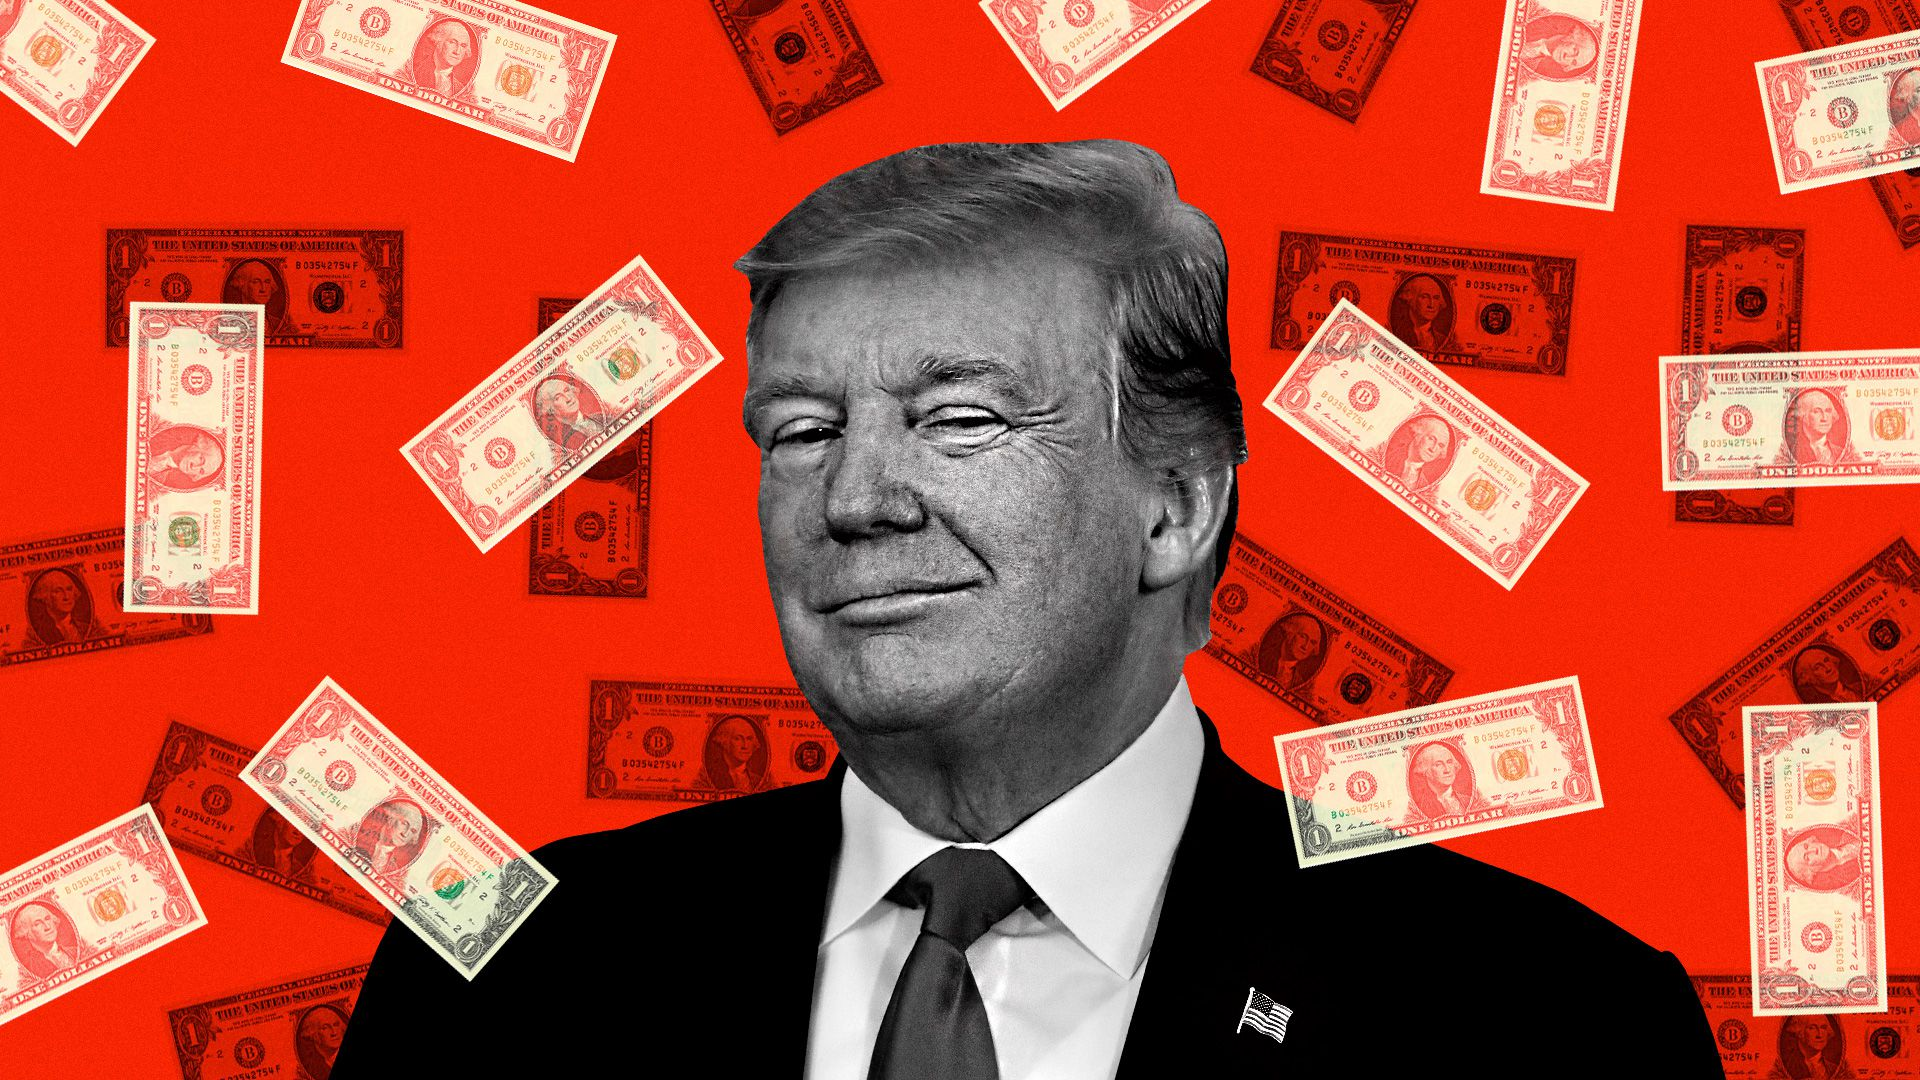 Trump smiling while dollar bills are raining all around him